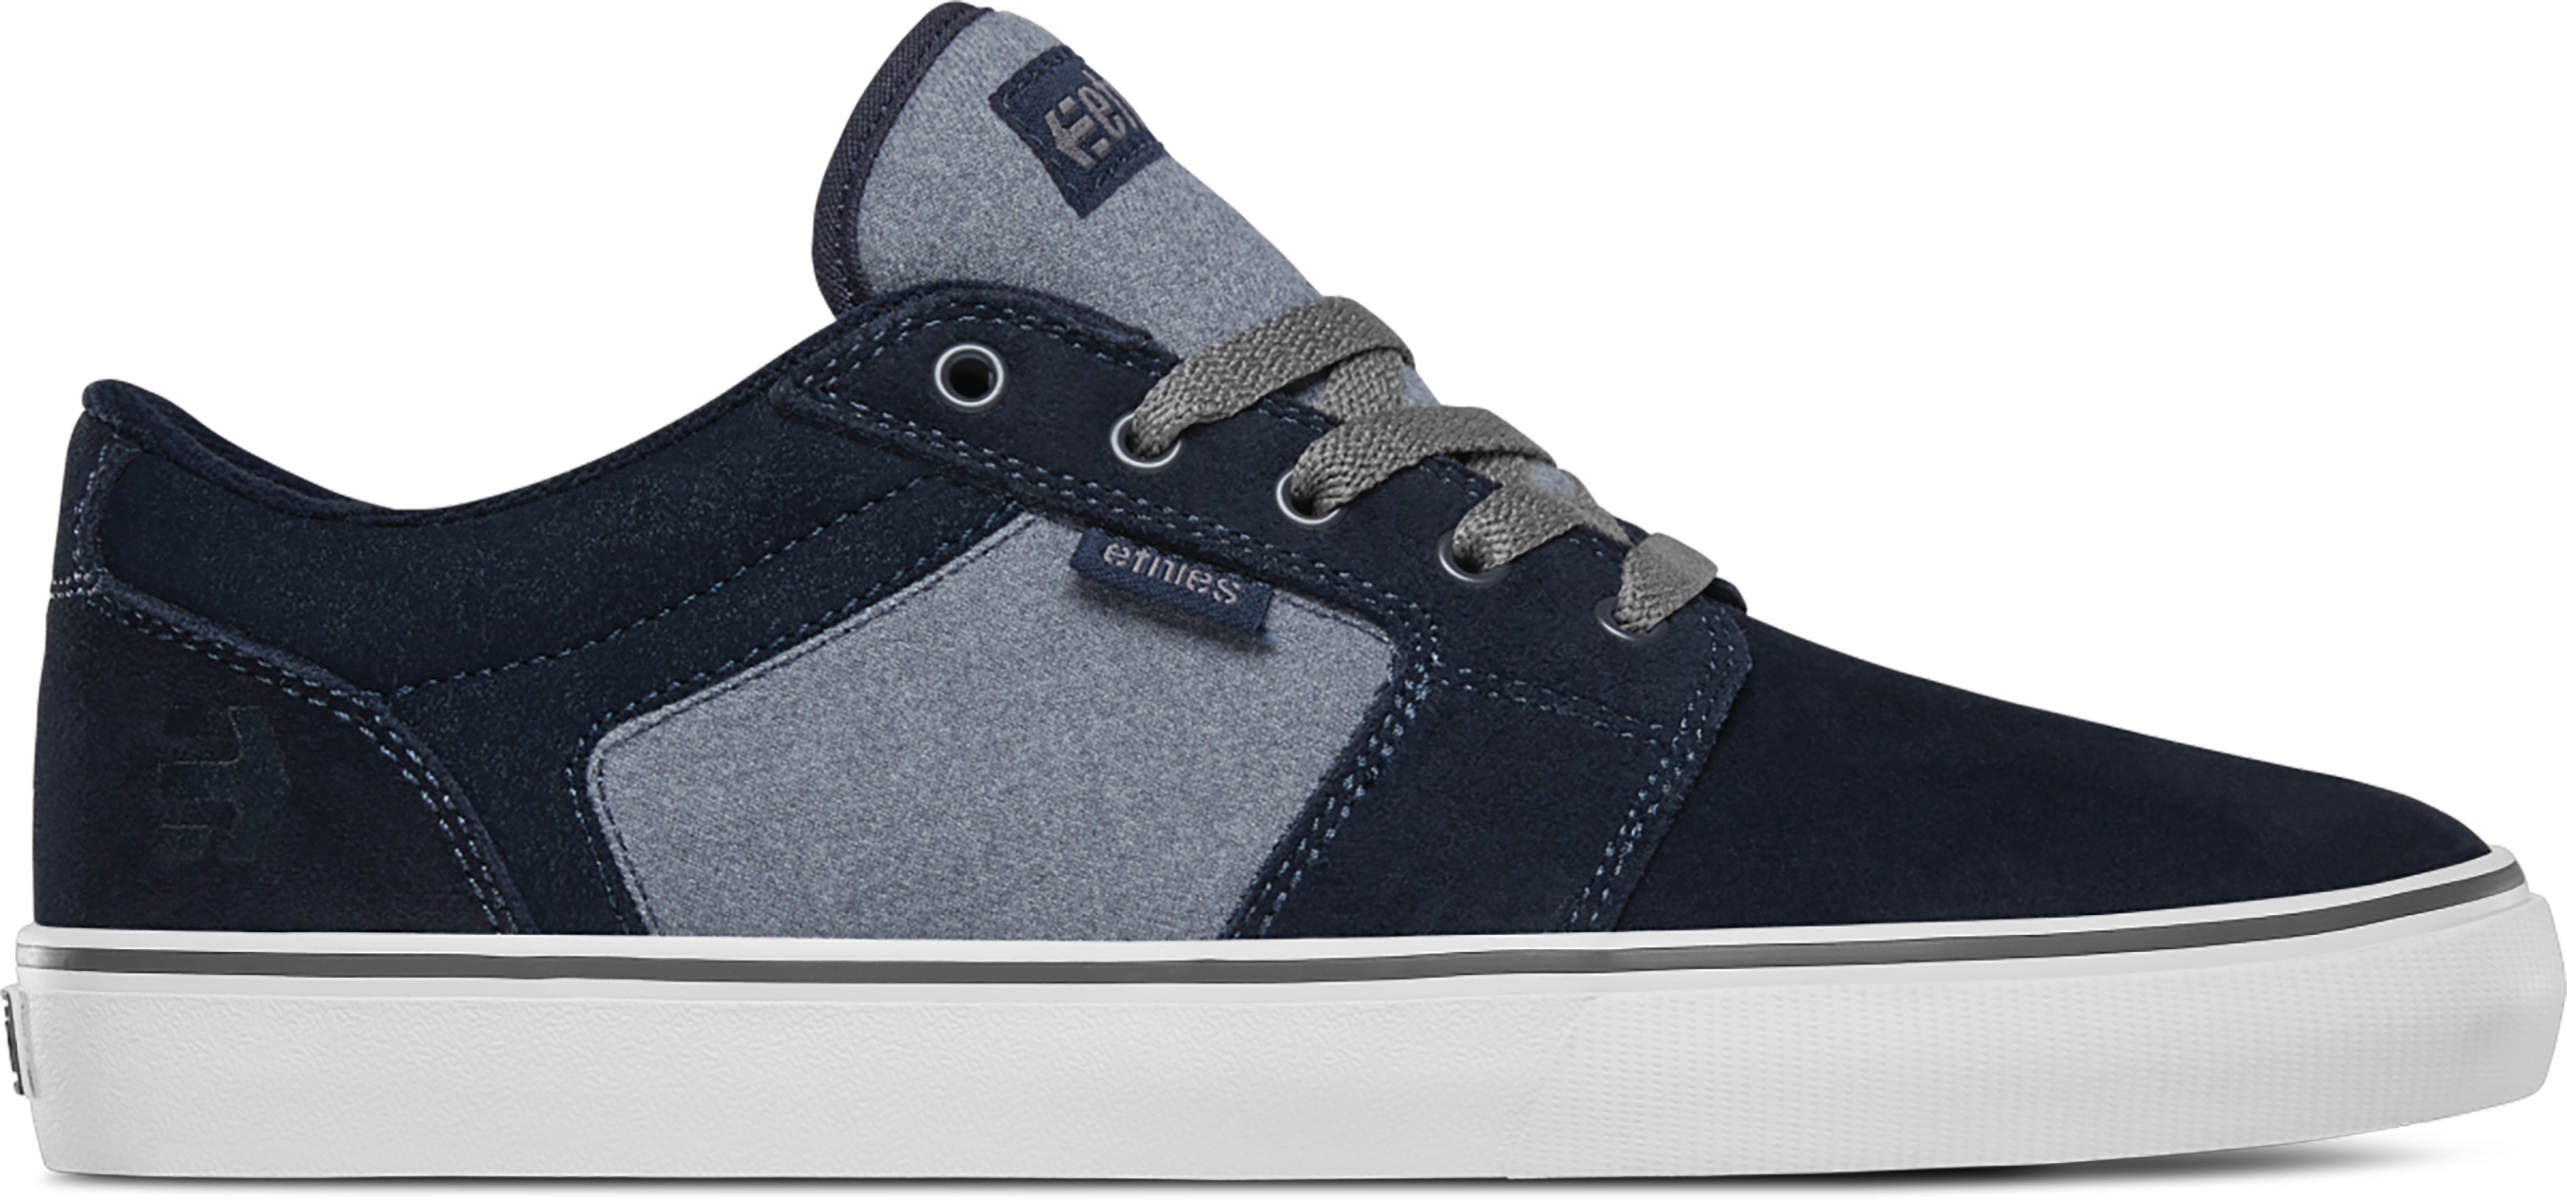 Etnies Barge LS Navy/Heather Shoe | Shoes and overlays